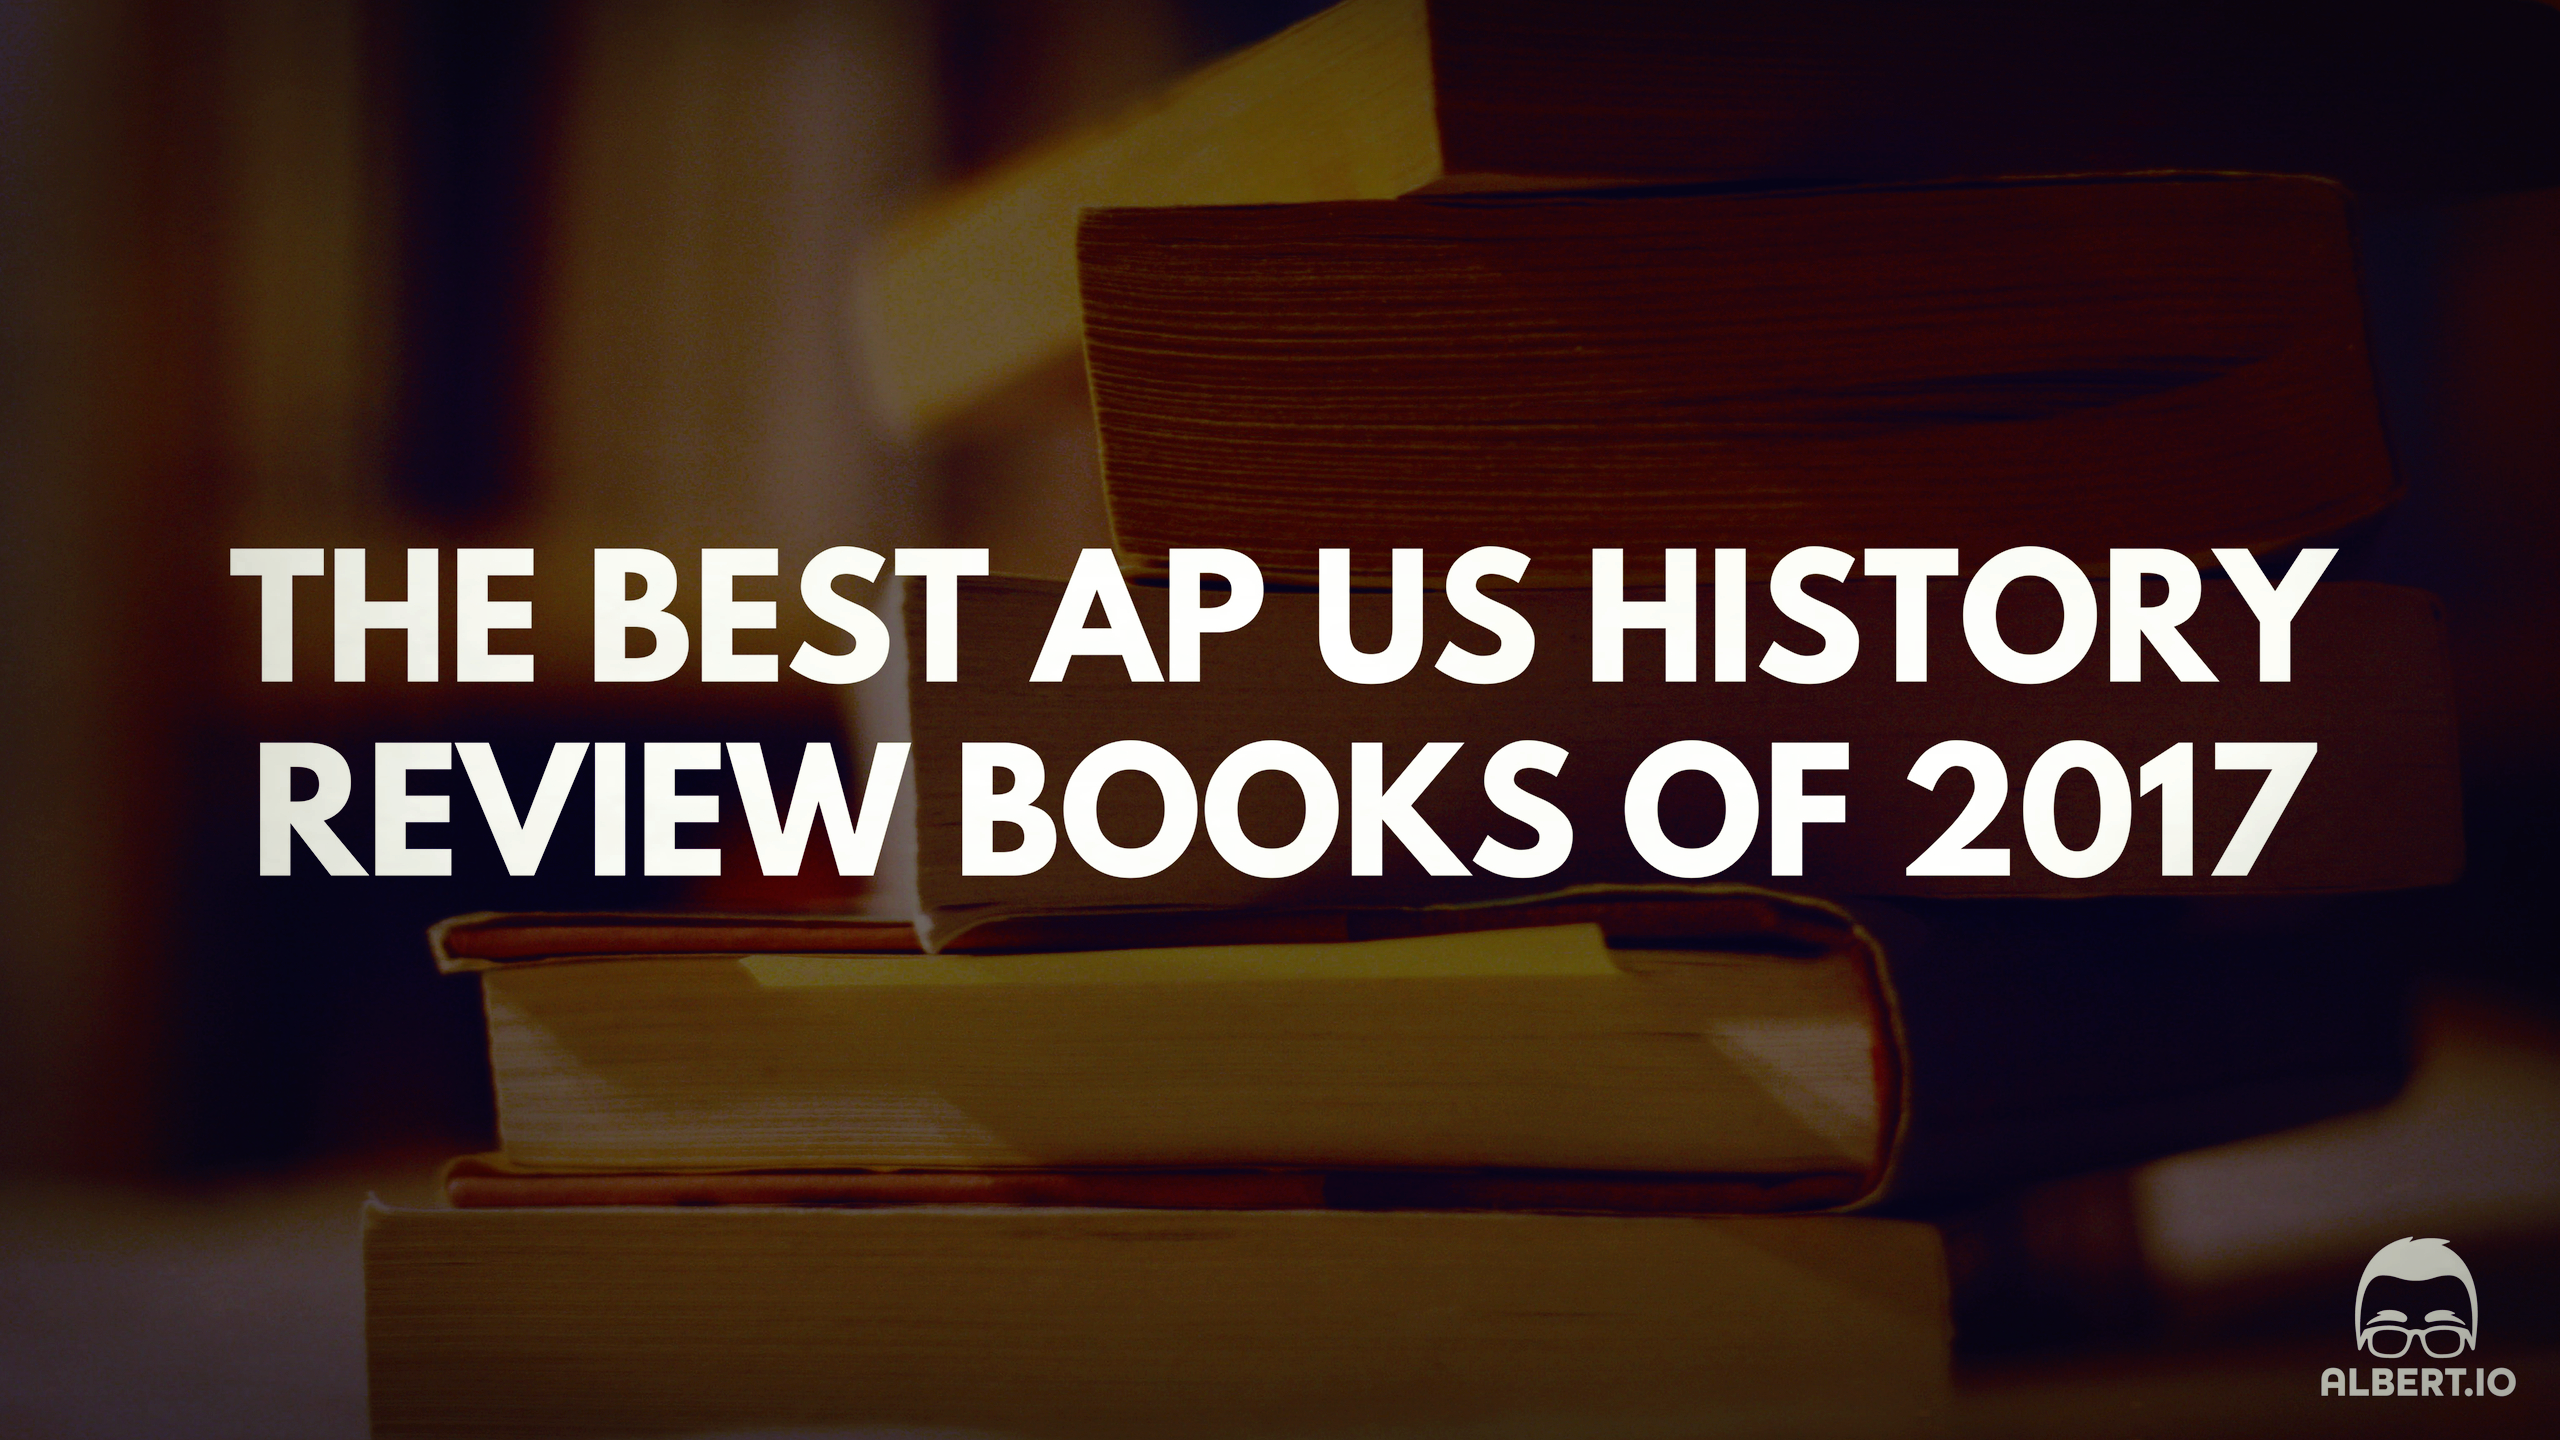 college board ap us history essays Teacher's guide to advanced placement (ap) courses in united states history new york: college entrance examination board, 1991 michael s henry is an advanced placement history teacher at bowie high school, prince george's county, maryland.